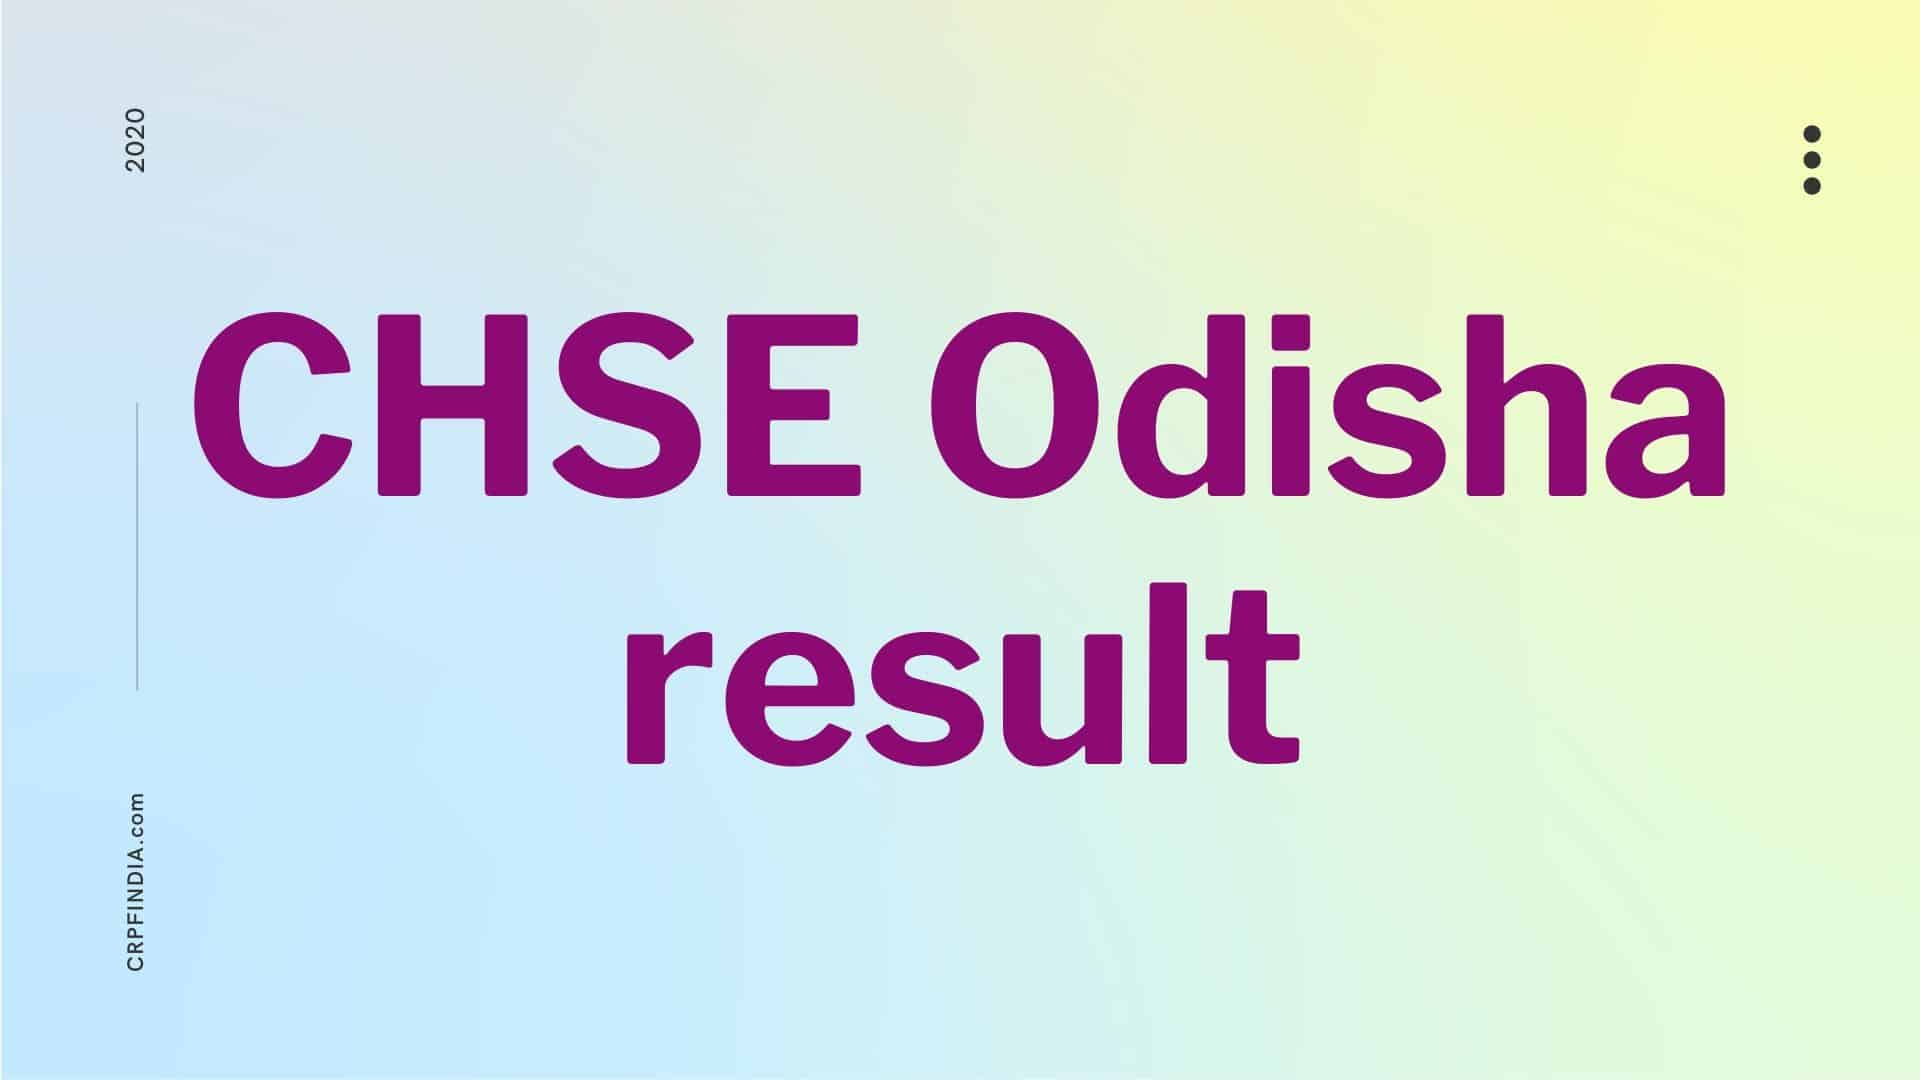 Photo of CHSE Odisha result 2020, Odisha +2 result at chseodisha.nic.in 2020 science, art, commerce result